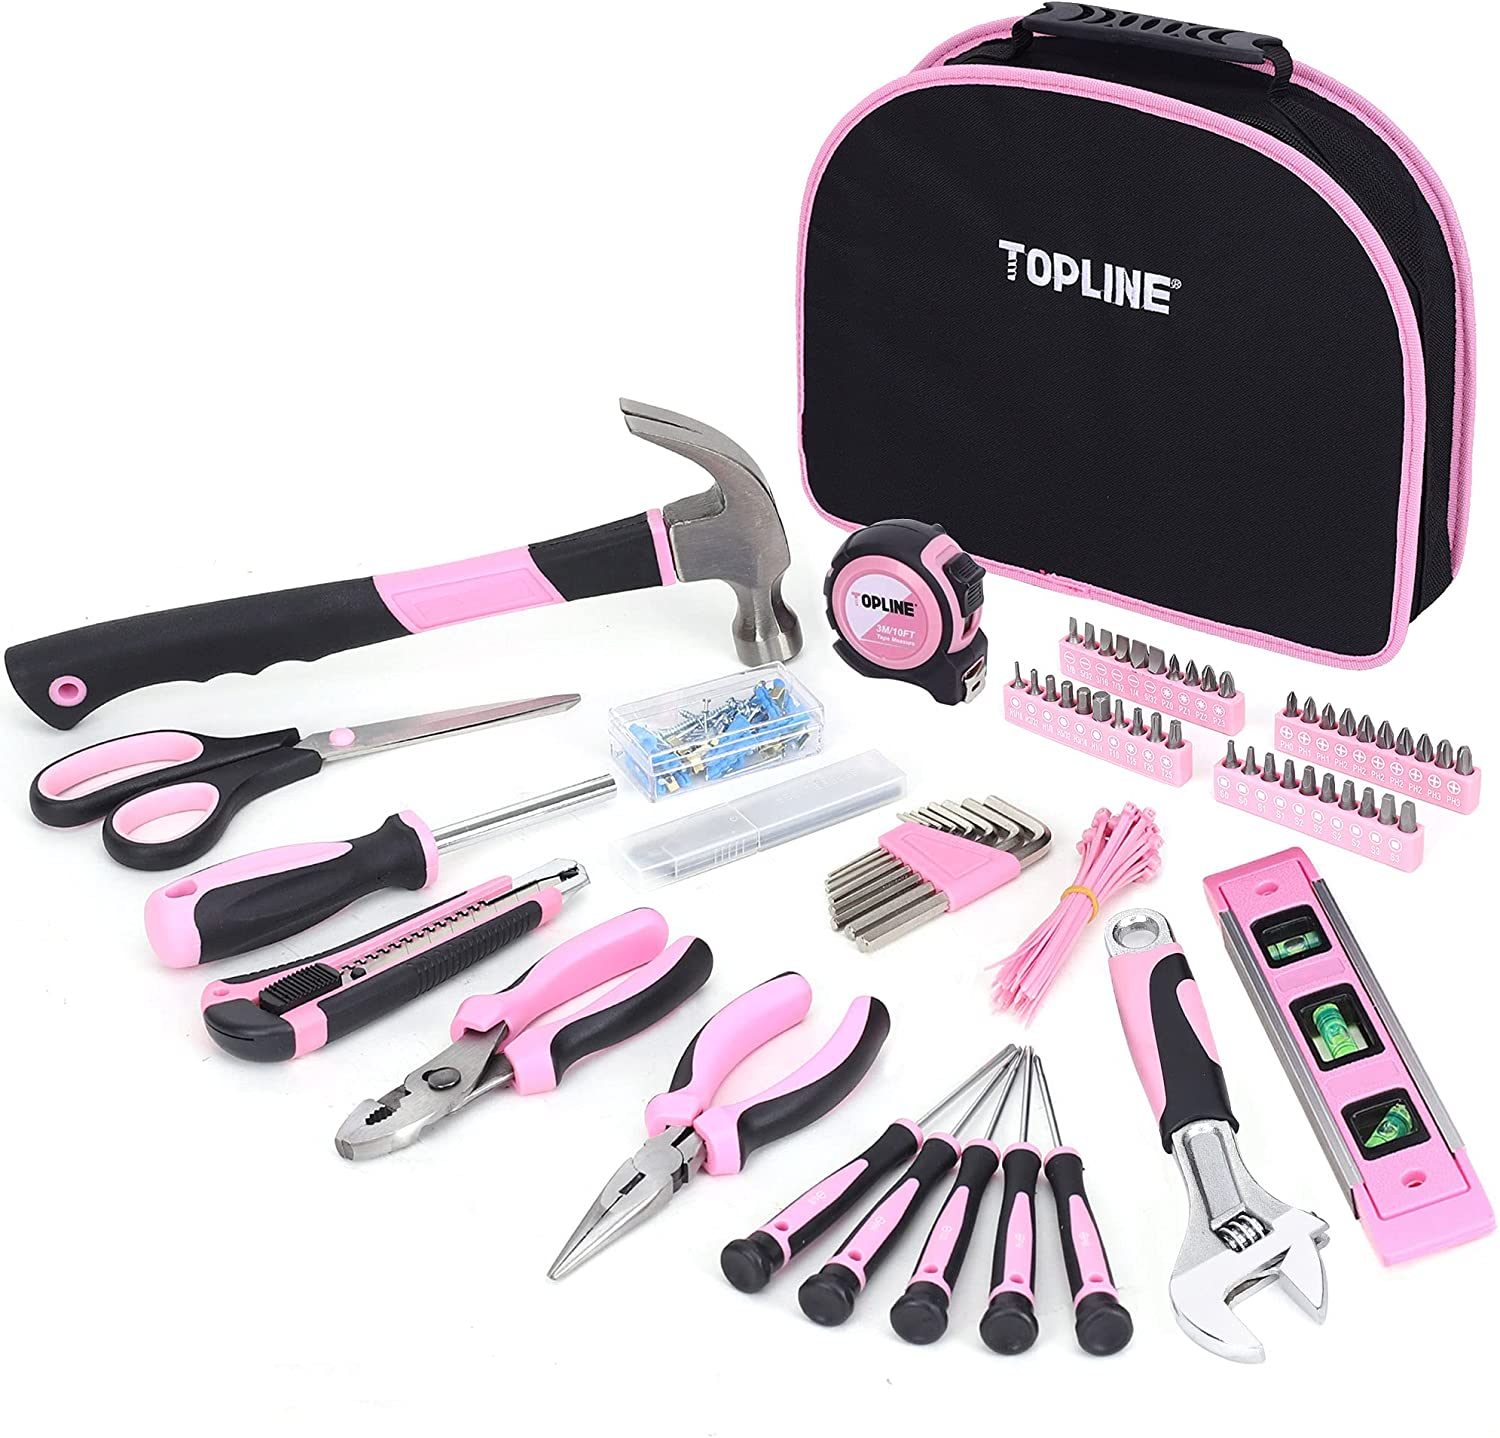 TOPLINE 208-Piece Ladies Pink Tool Set with Easy Carrying Round Pouch